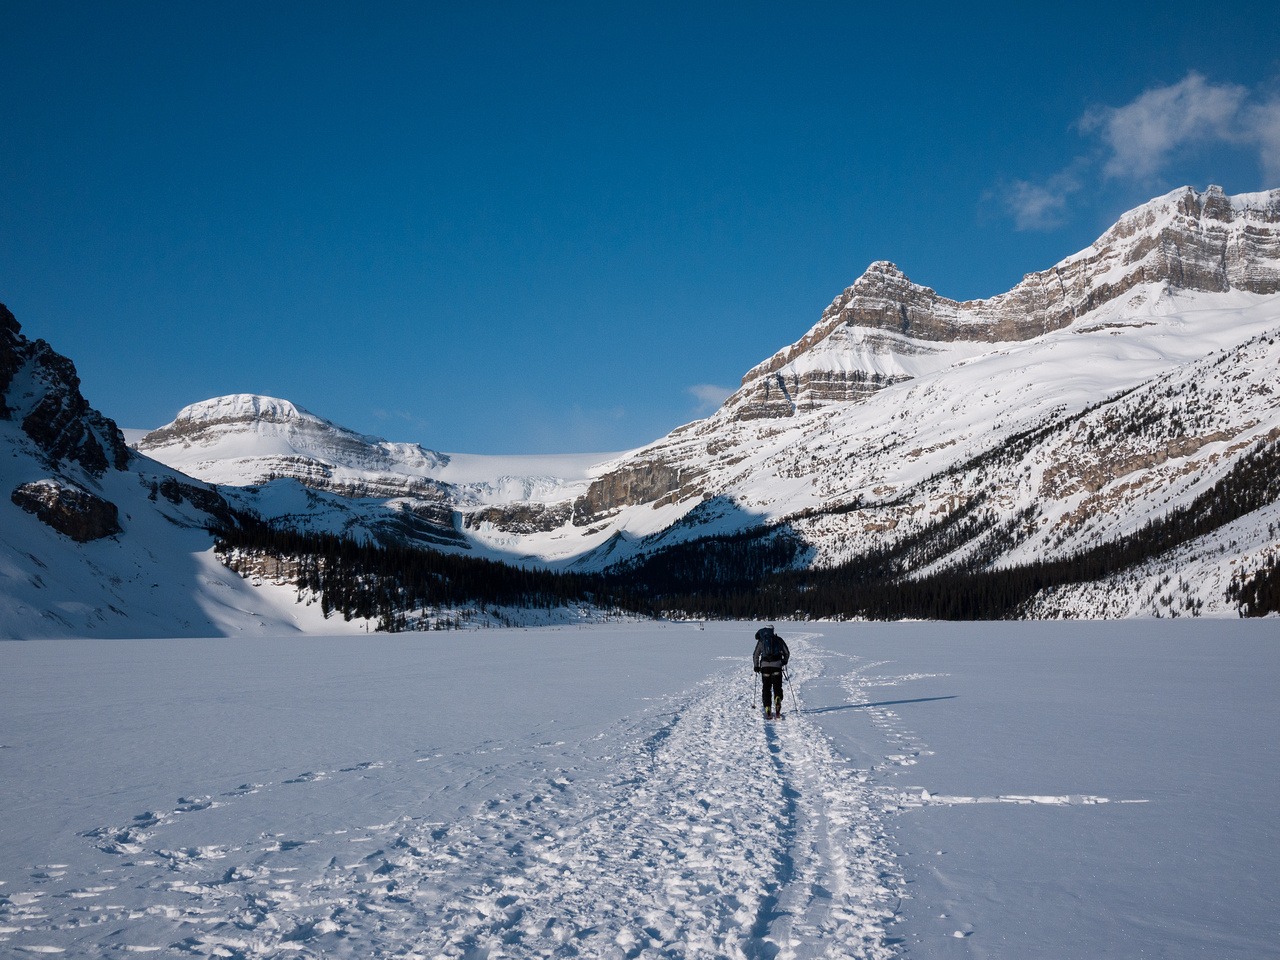 Mike crossing Bow Lake - looks like mid winter!